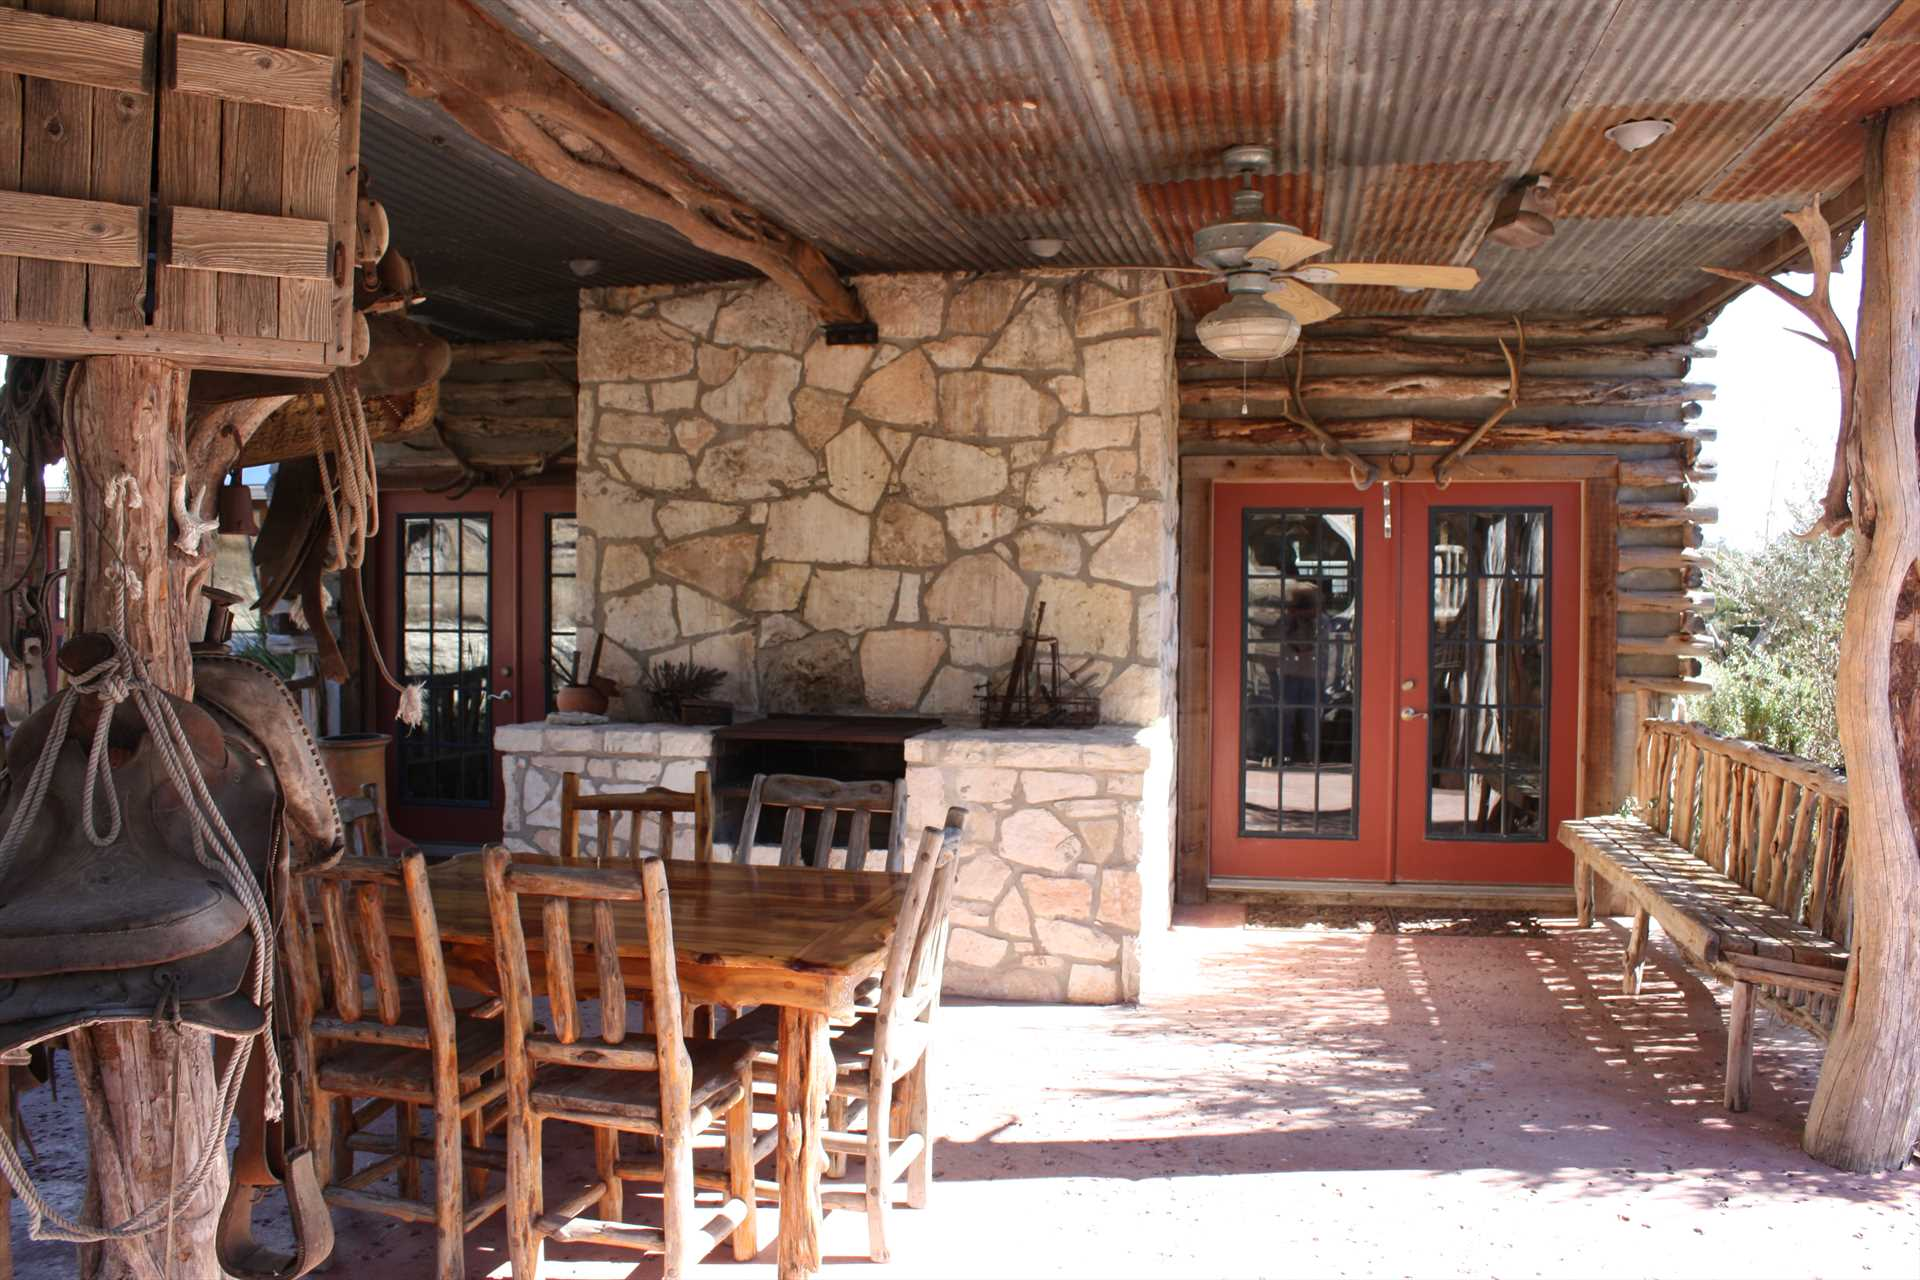 Chat with your fellow guests, grill a hearty meal, and even cook up some s'mores and marshmallows on the chimenea!